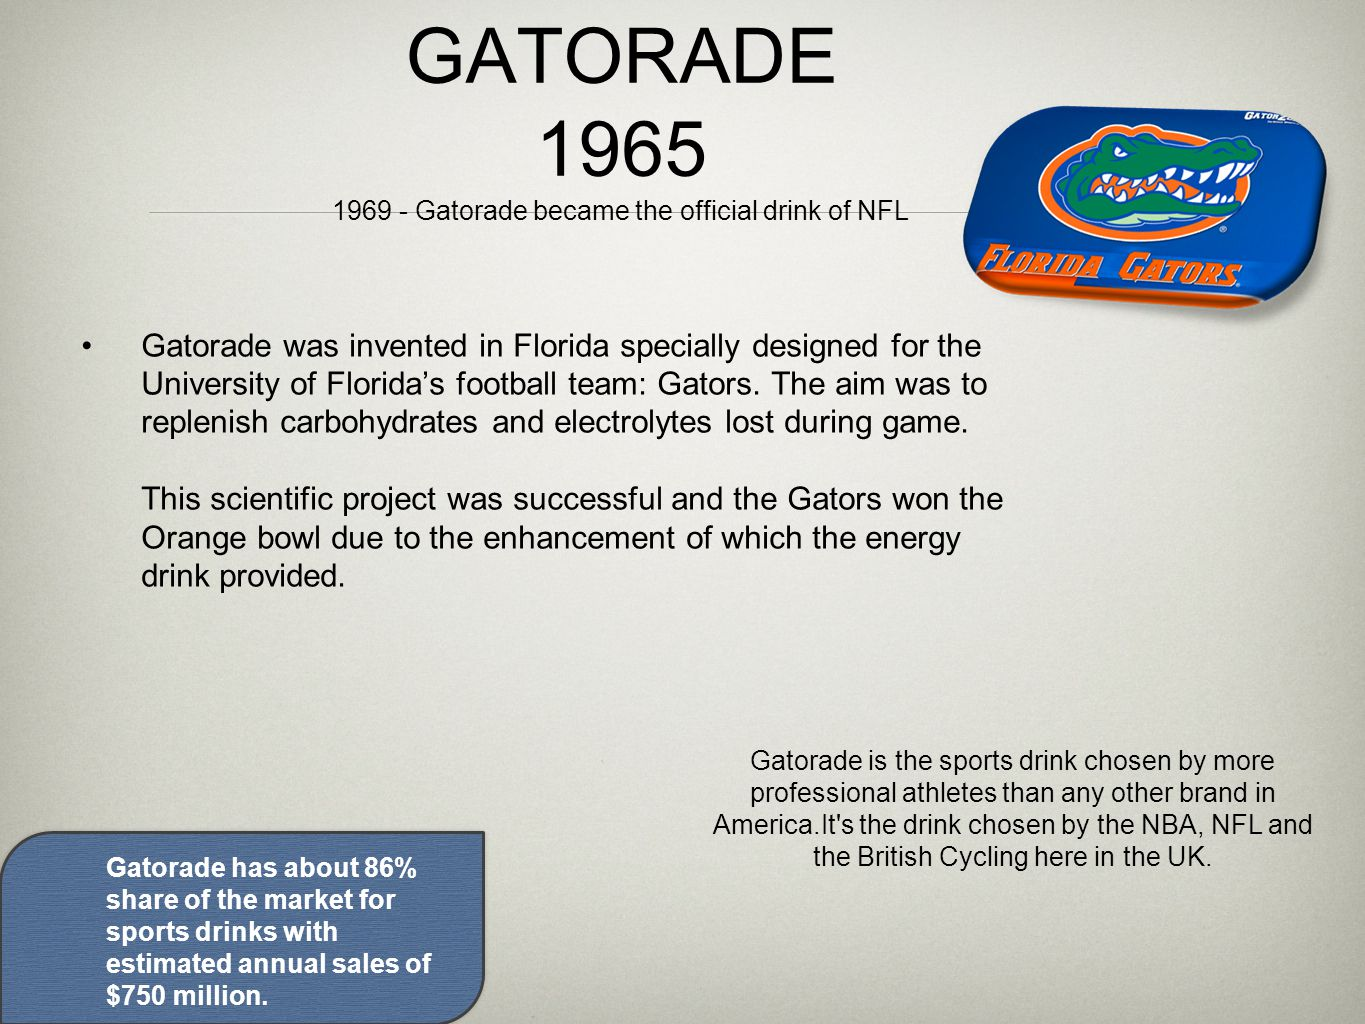 GATORADE 1965 1969 - Gatorade became the official drink of NFL Gatorade was invented in Florida specially designed for the University of Florida's football team: Gators.